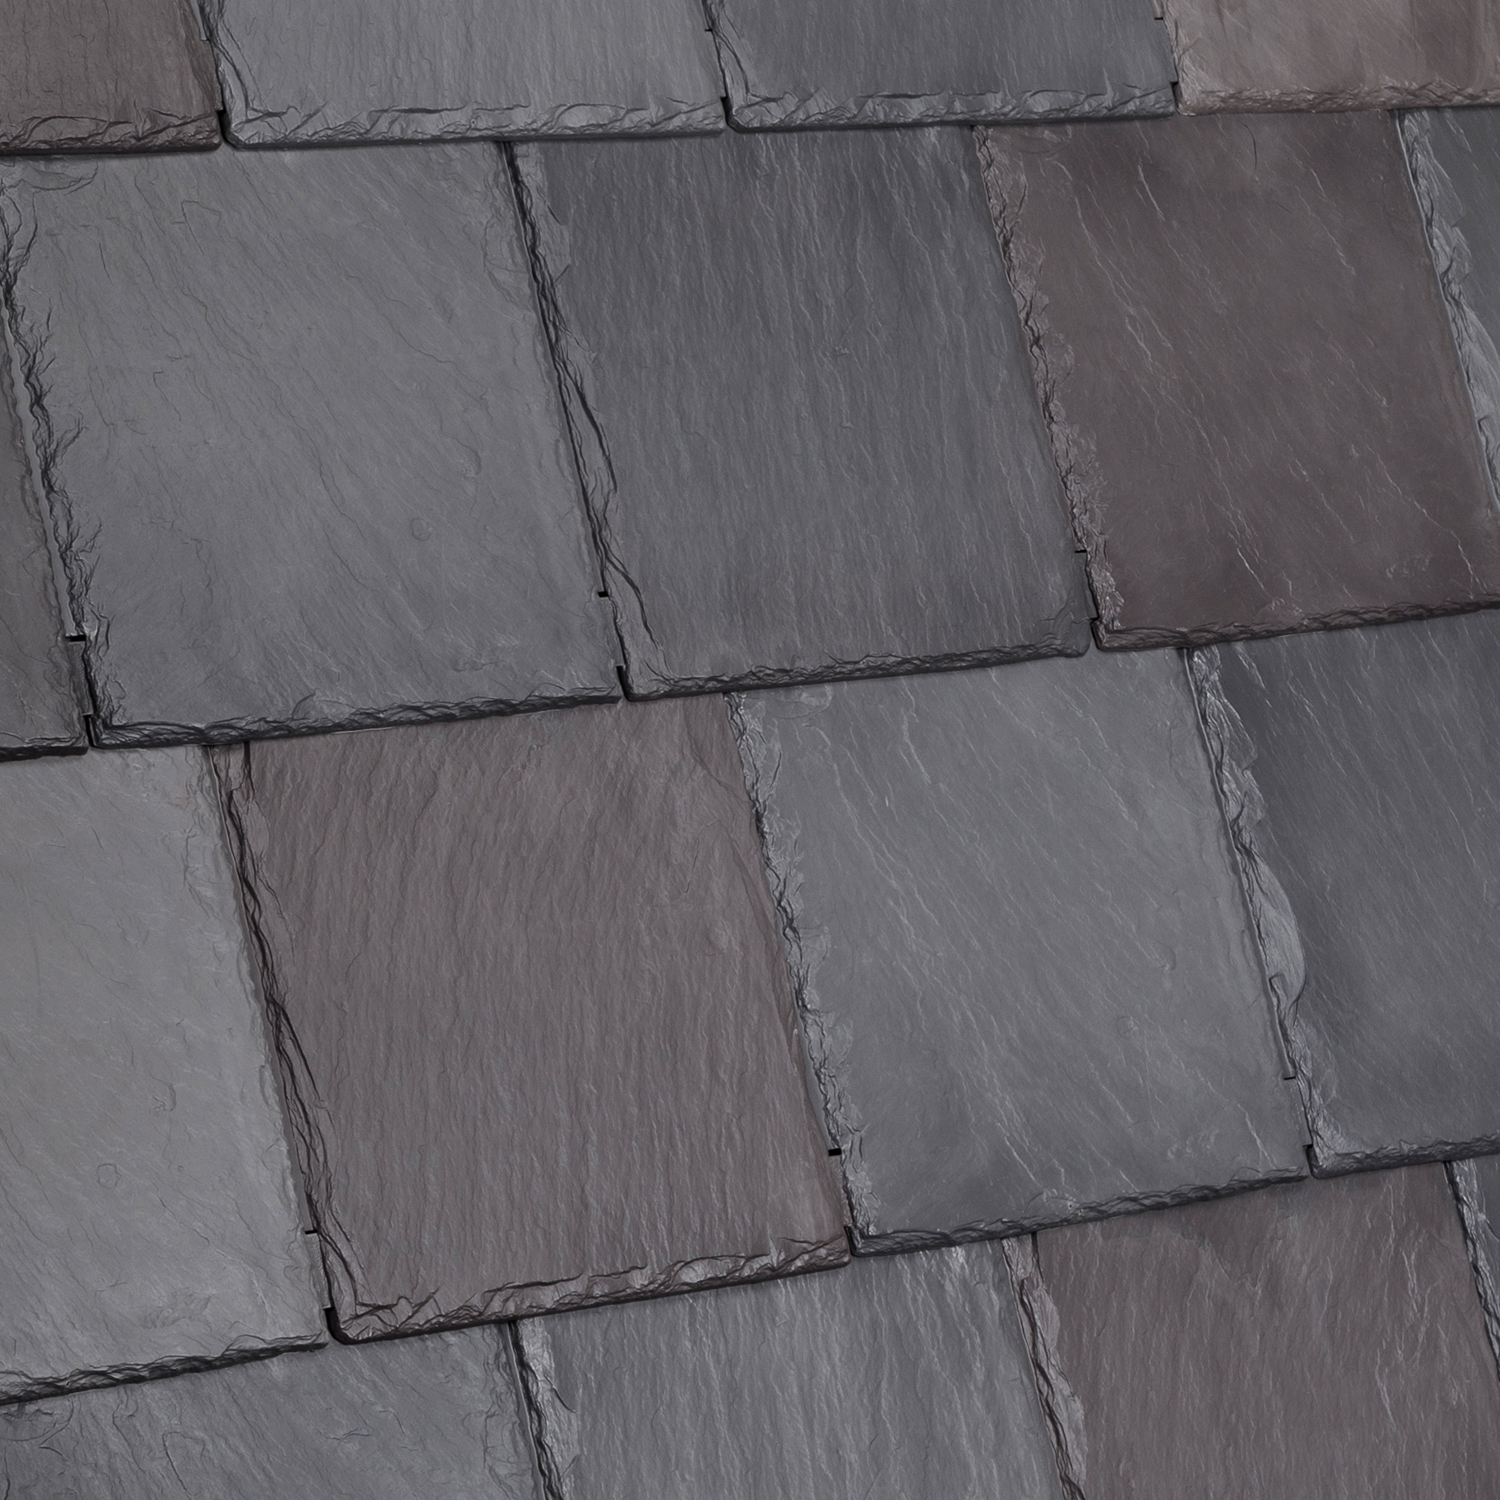 Historic Appeal With A Twist: Synthetic Slate and Shake Roofs - Today, there are more options and designs for your home exterior than ever before. If you want to add historic charm to your home, consider a synthetic slate roof or synthetic shake roof. These revolutionary products are.